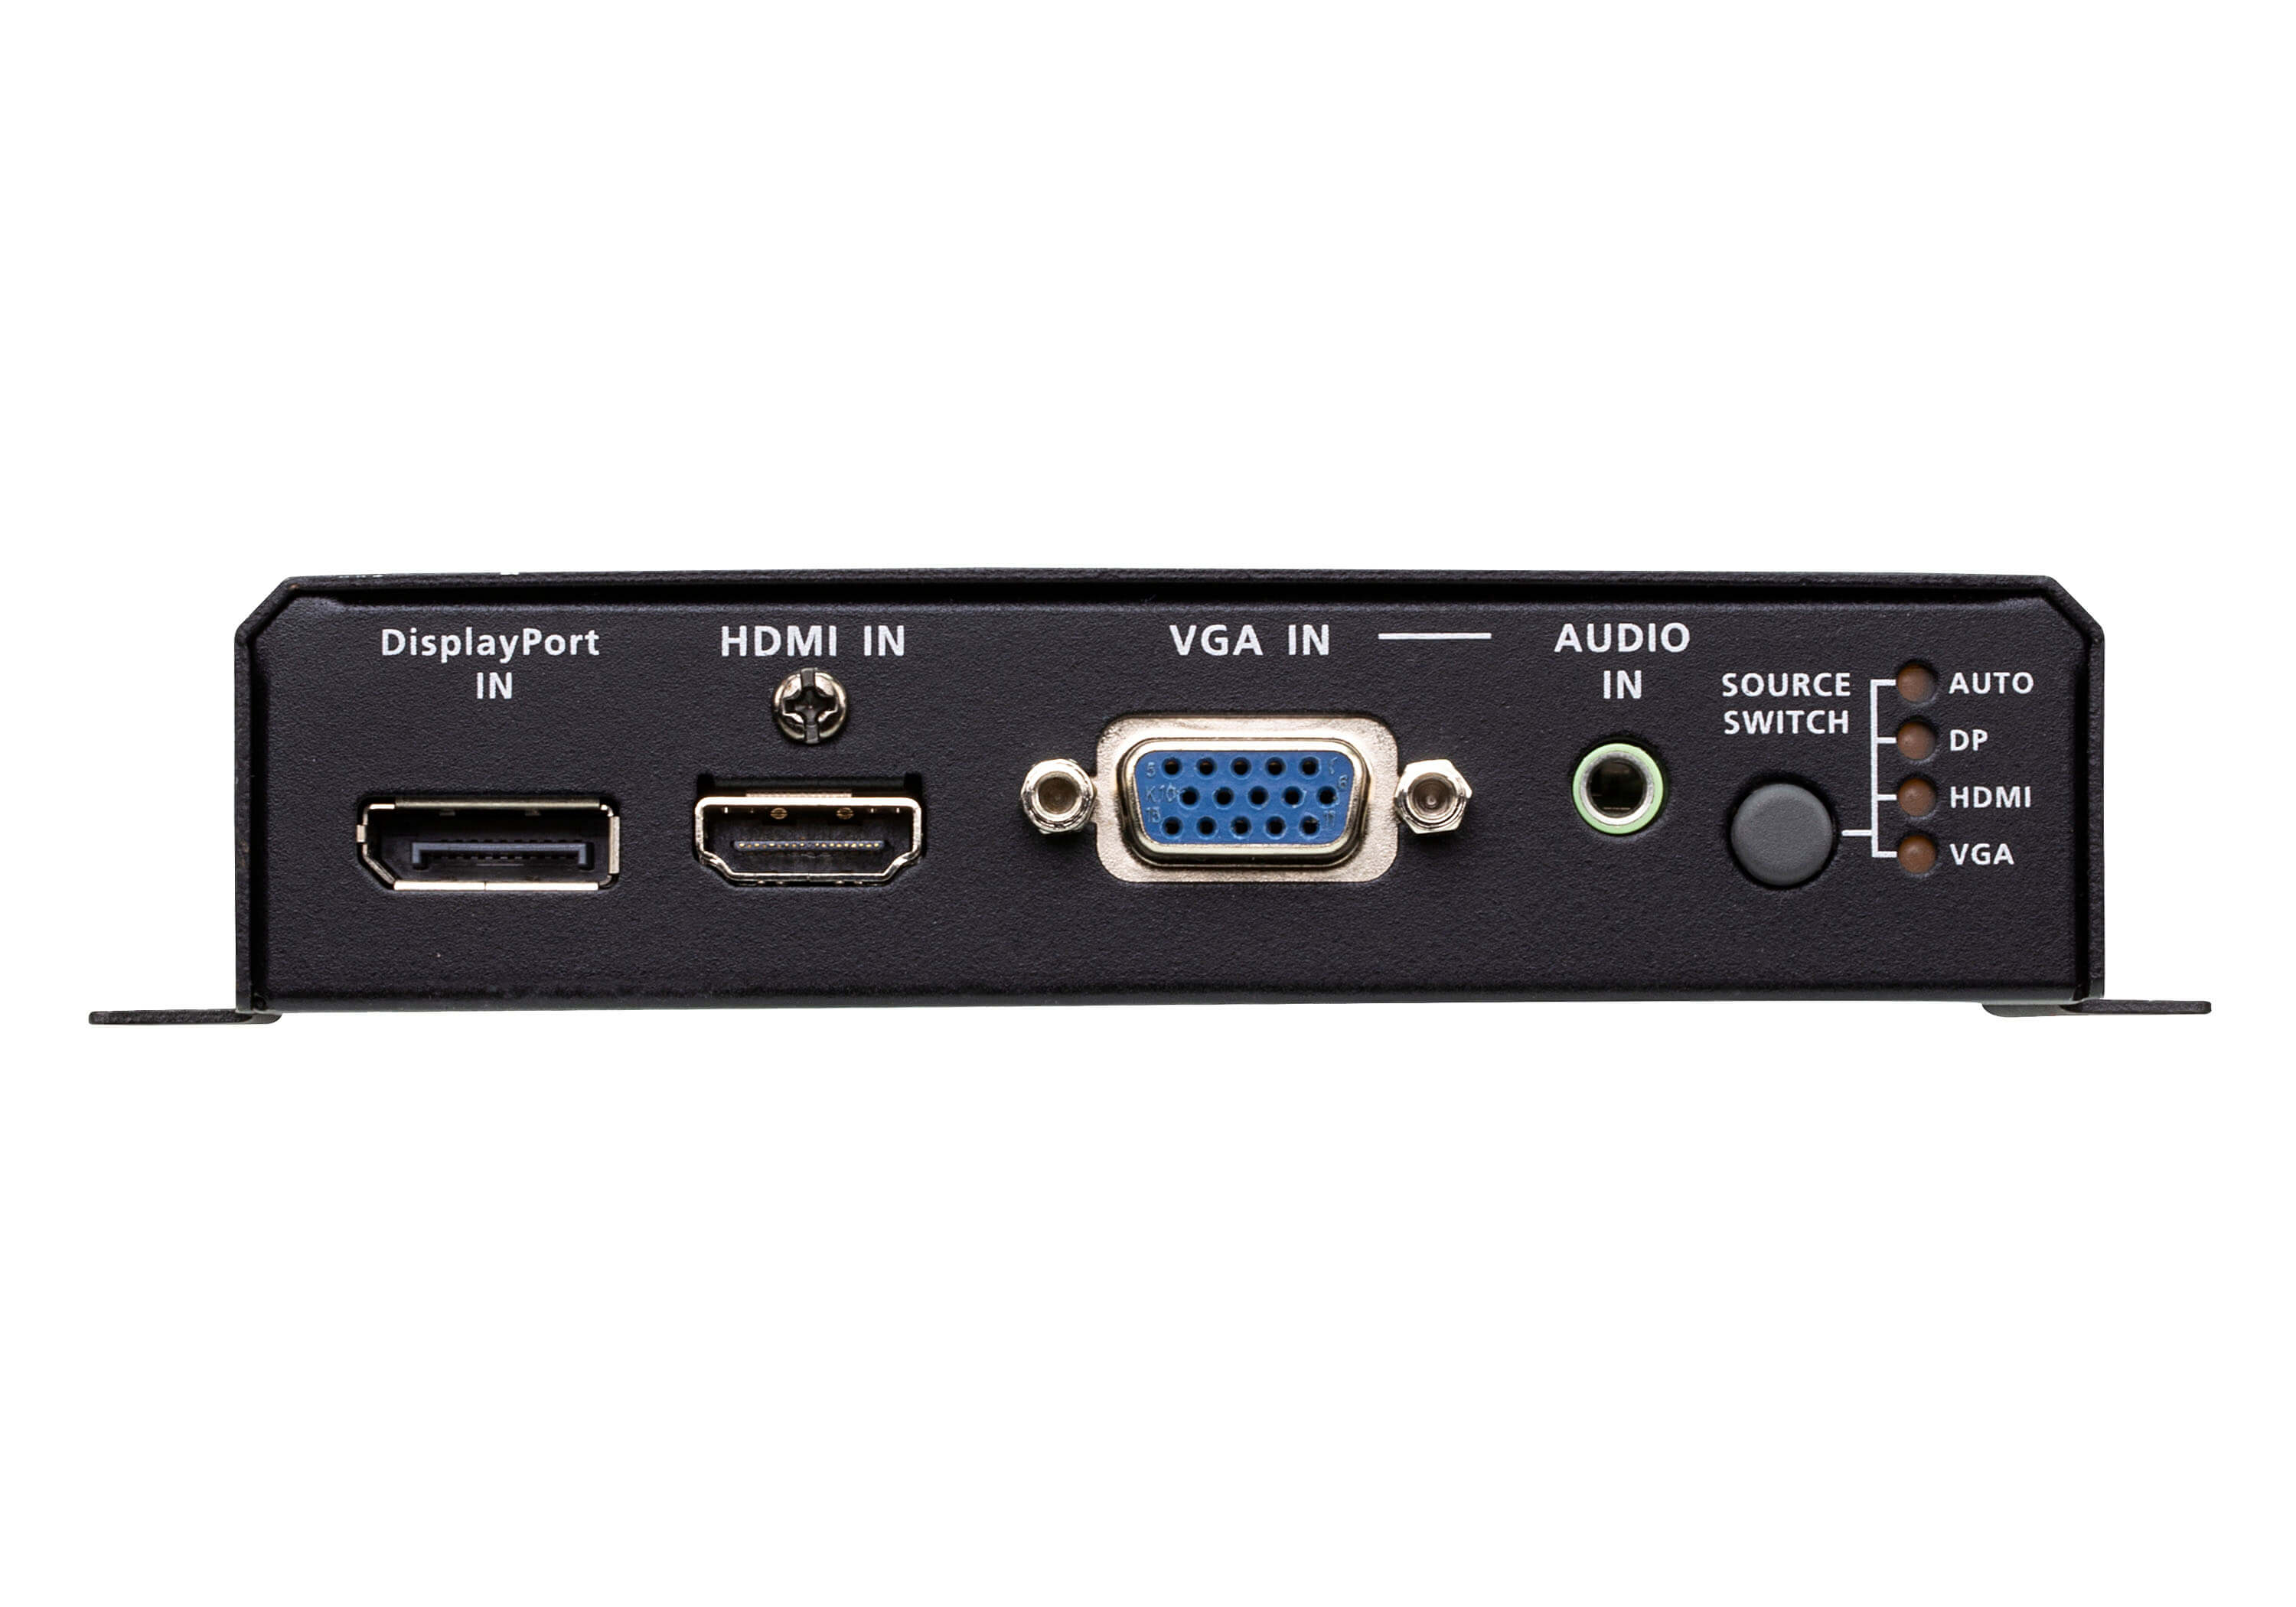 DisplayPort / HDMI / VGA Switch with HDBaseT Transmitter-3